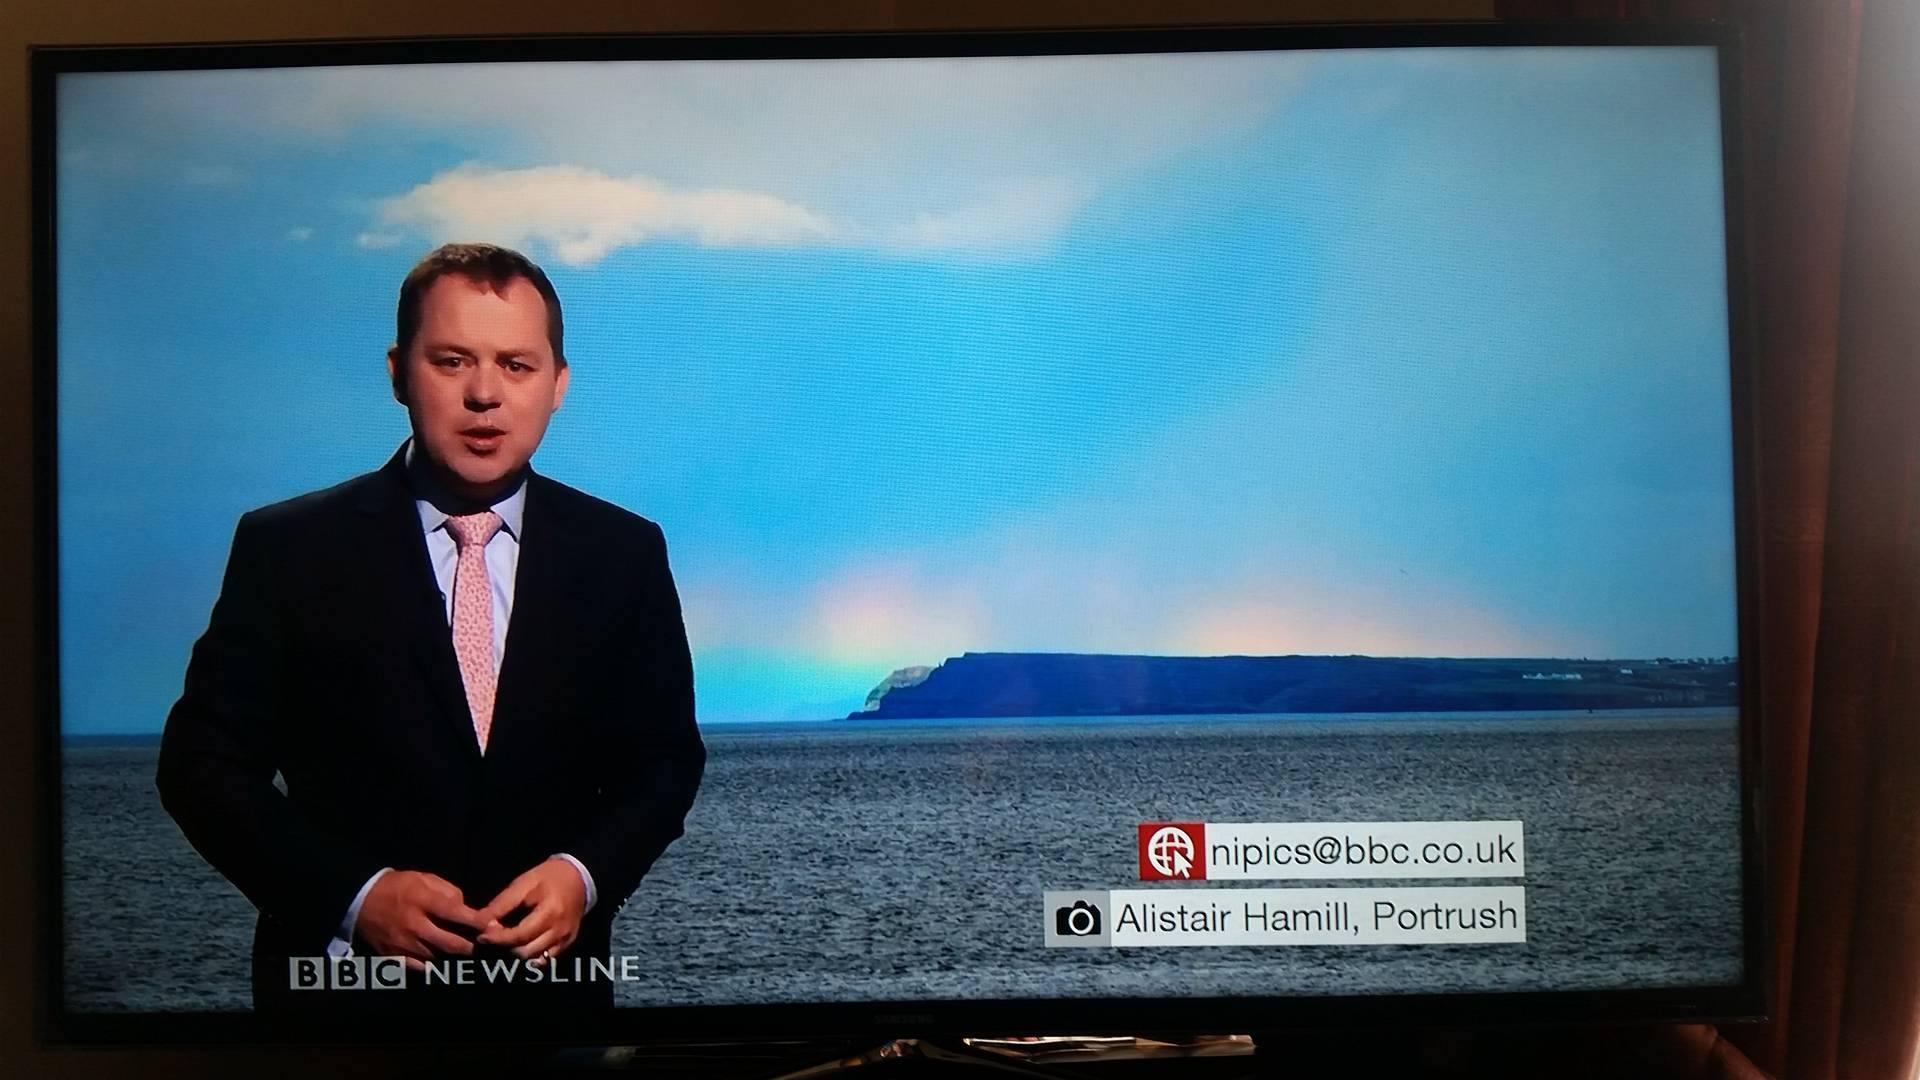 The low bow appearing on BBC TV. Thanks again to Chris Ibottson for taking this picture for me.